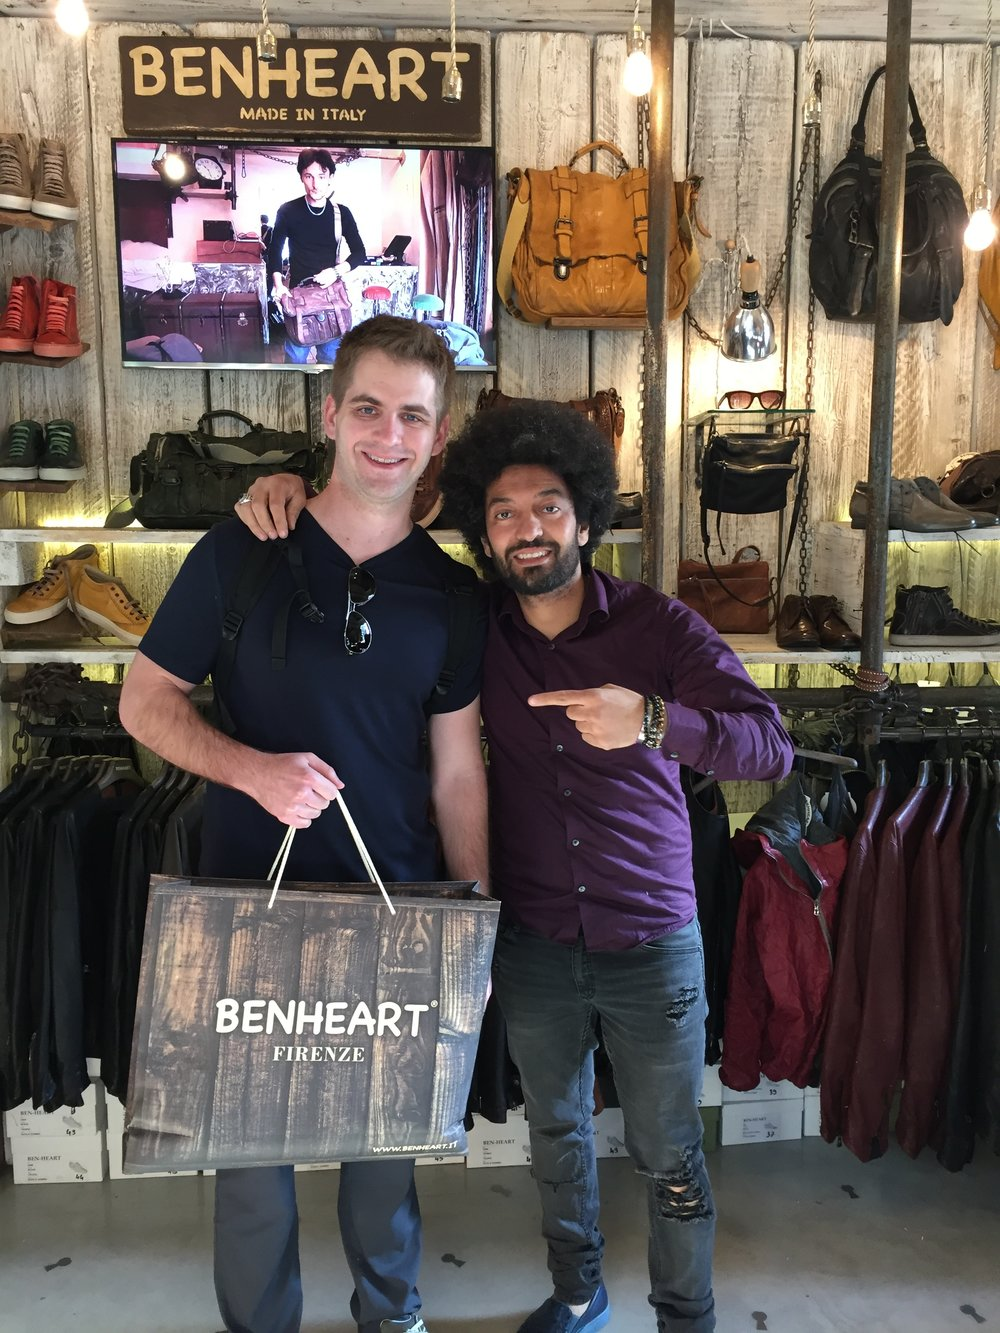 Paul purchasing a jacket from the man himself, Ben Heart